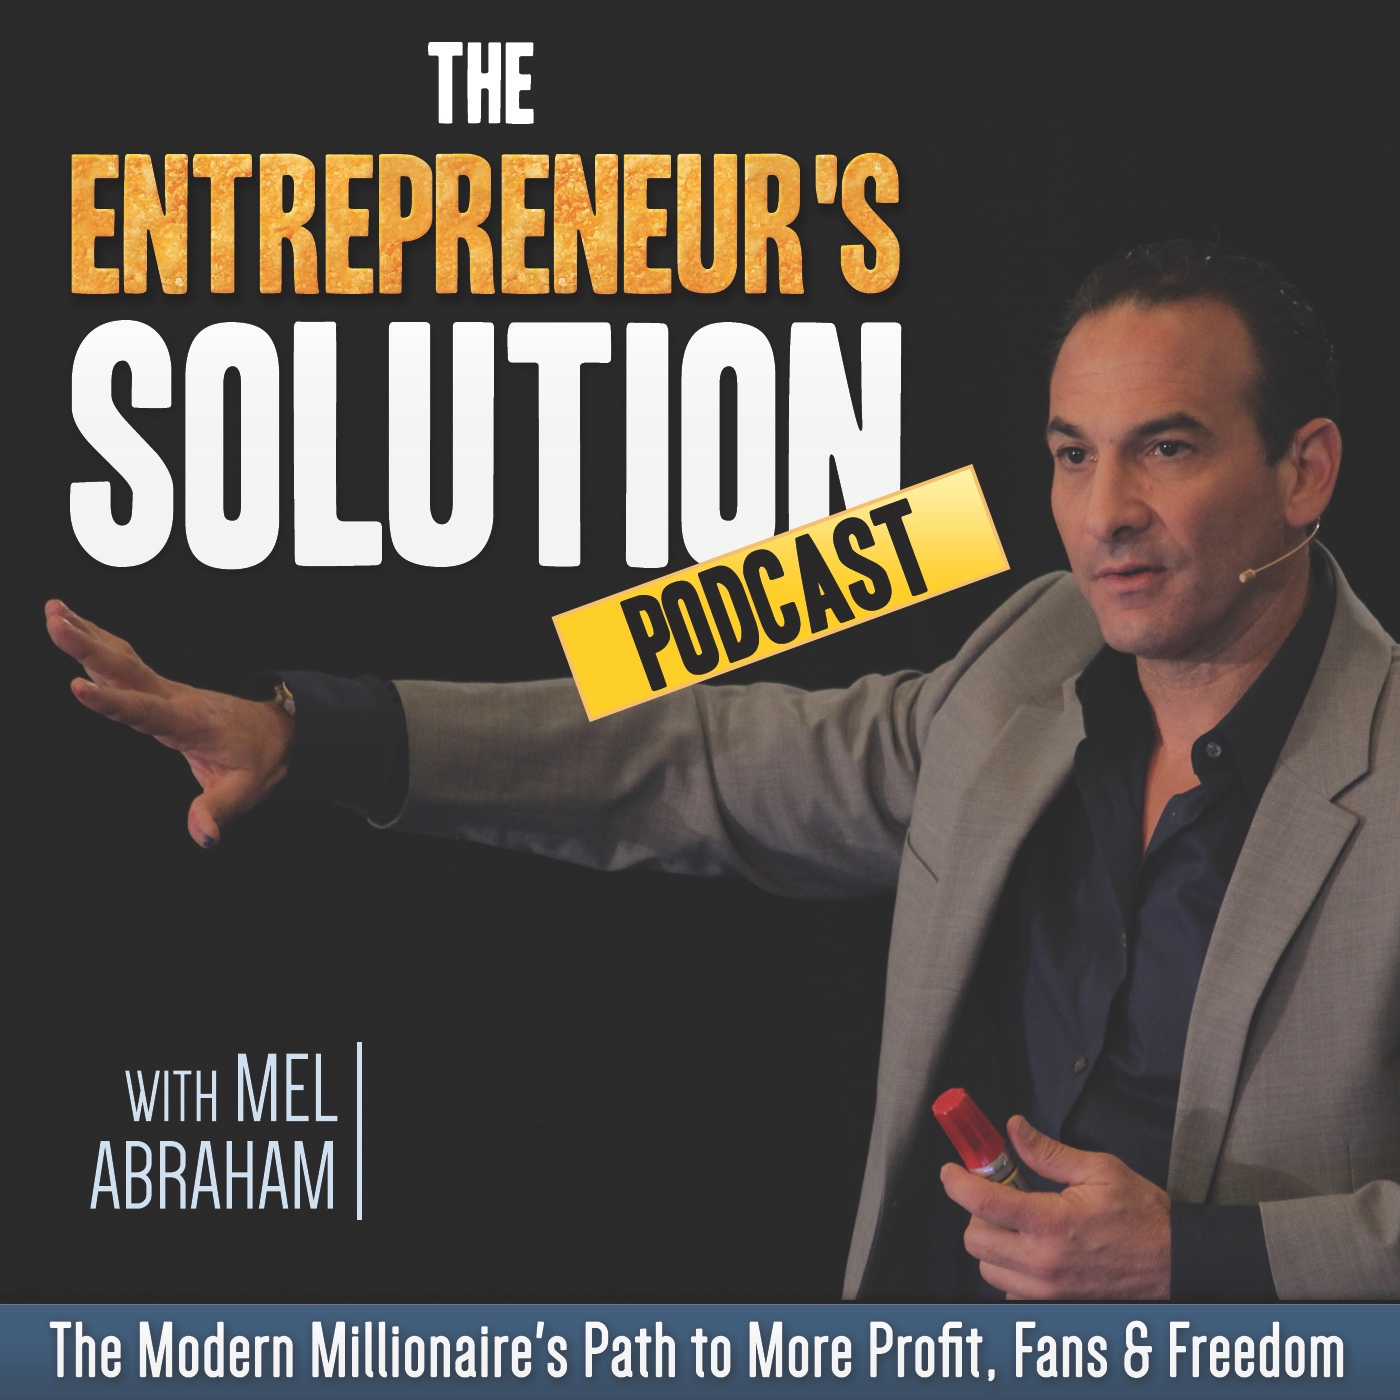 The Entrepreneur's Solution Videocast